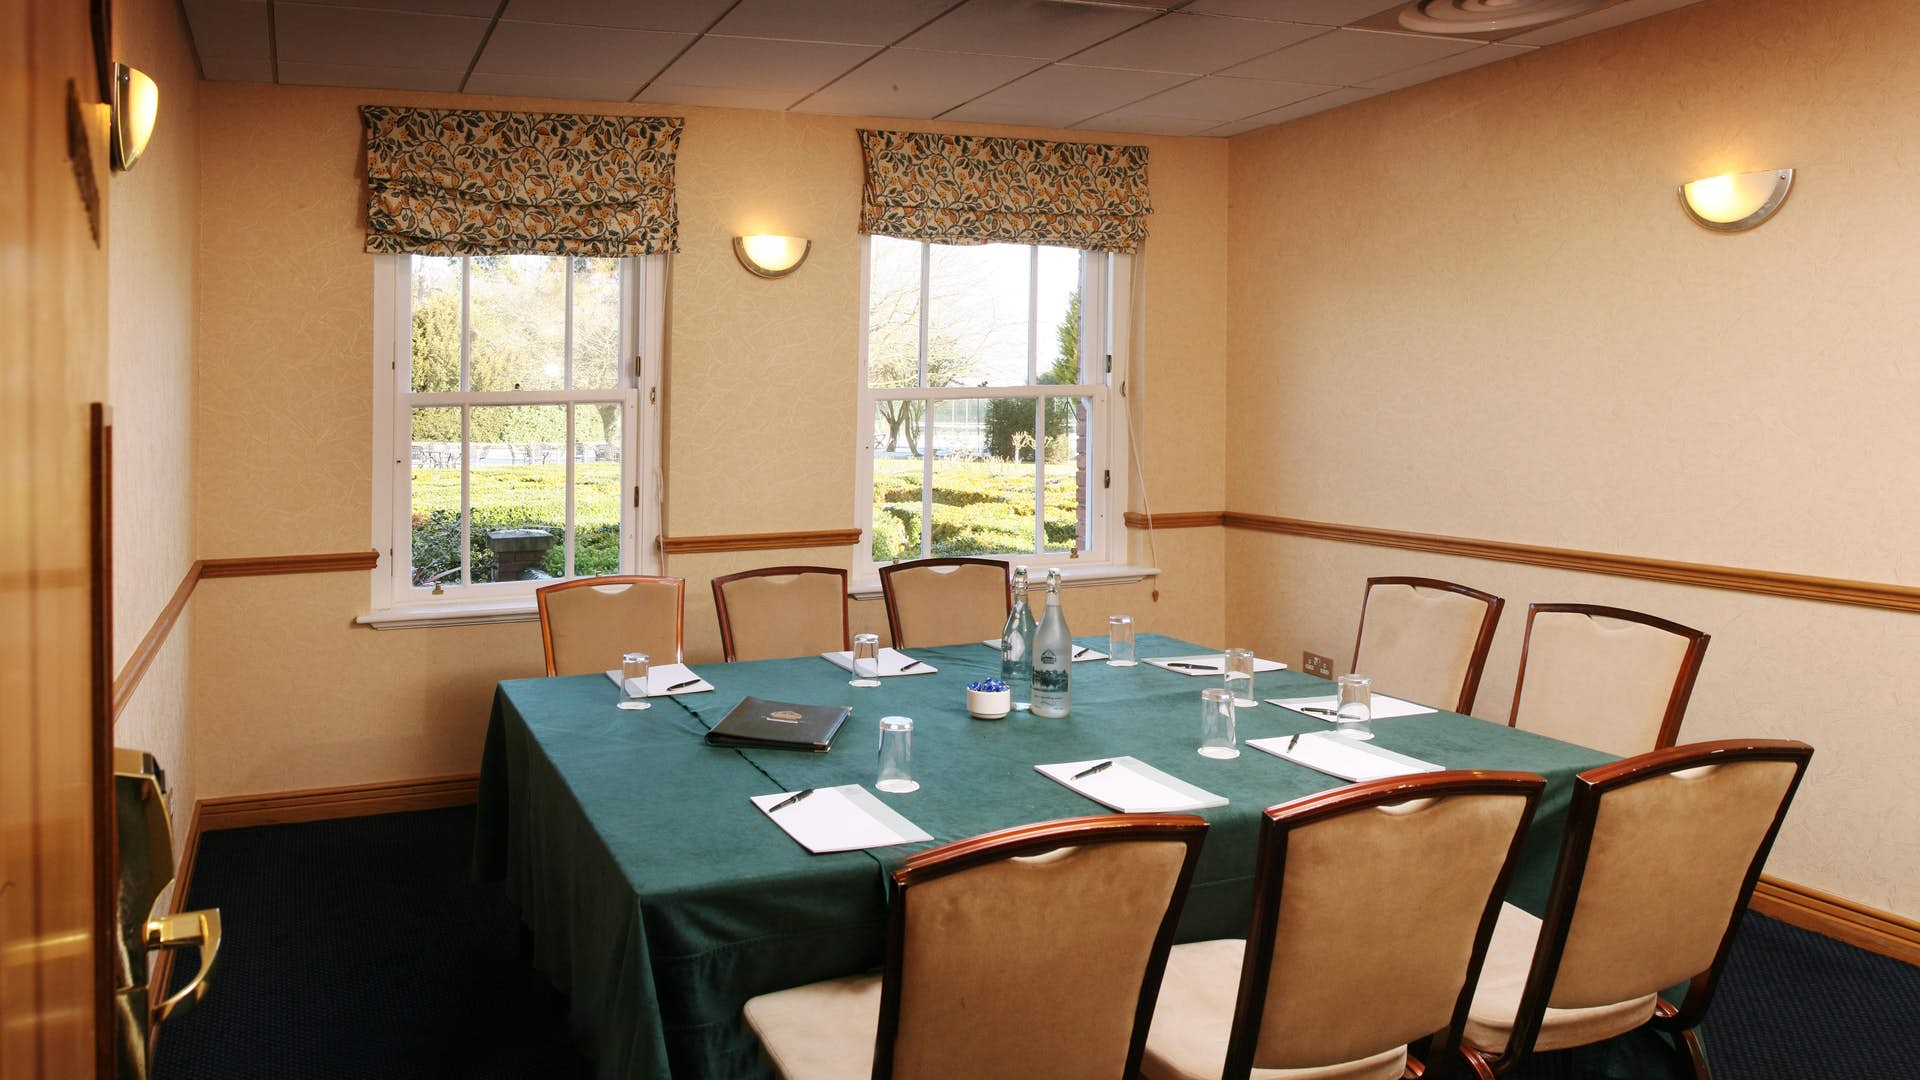 The green room business the ardencote manor hotel for The green room birmingham